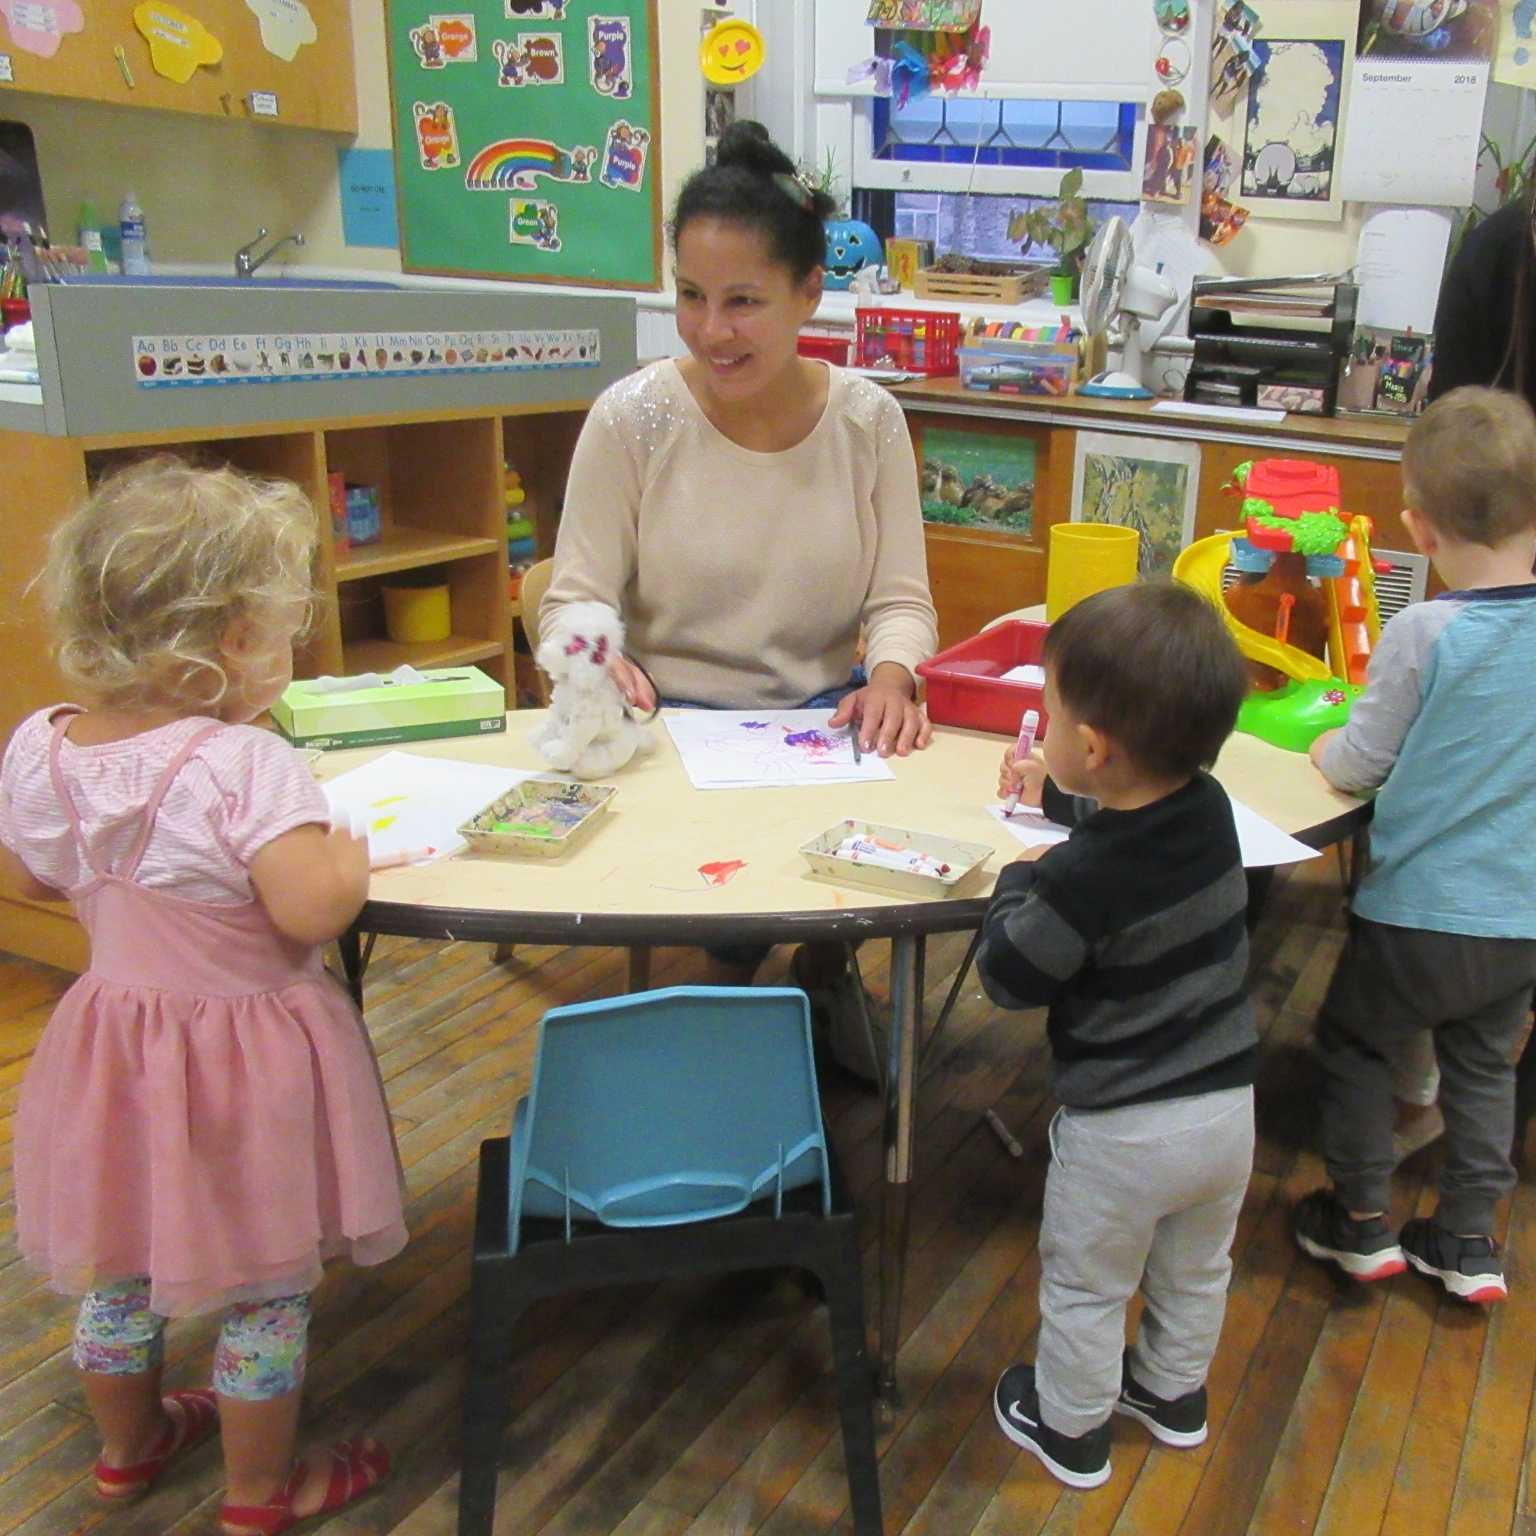 "Barbra Chigounis - Barbra has been the Lead Teacher in the Toddler Class since 2005. She captures children's interests through creative and developmentally appropriate lessons, capitalizing on everyday moments and establishing connective experiences. She supports self-expression, likes to improvise songs and games, tell interactive stories, and facilitate ""toddlerglyphics"" by exploring various fine art techniques."